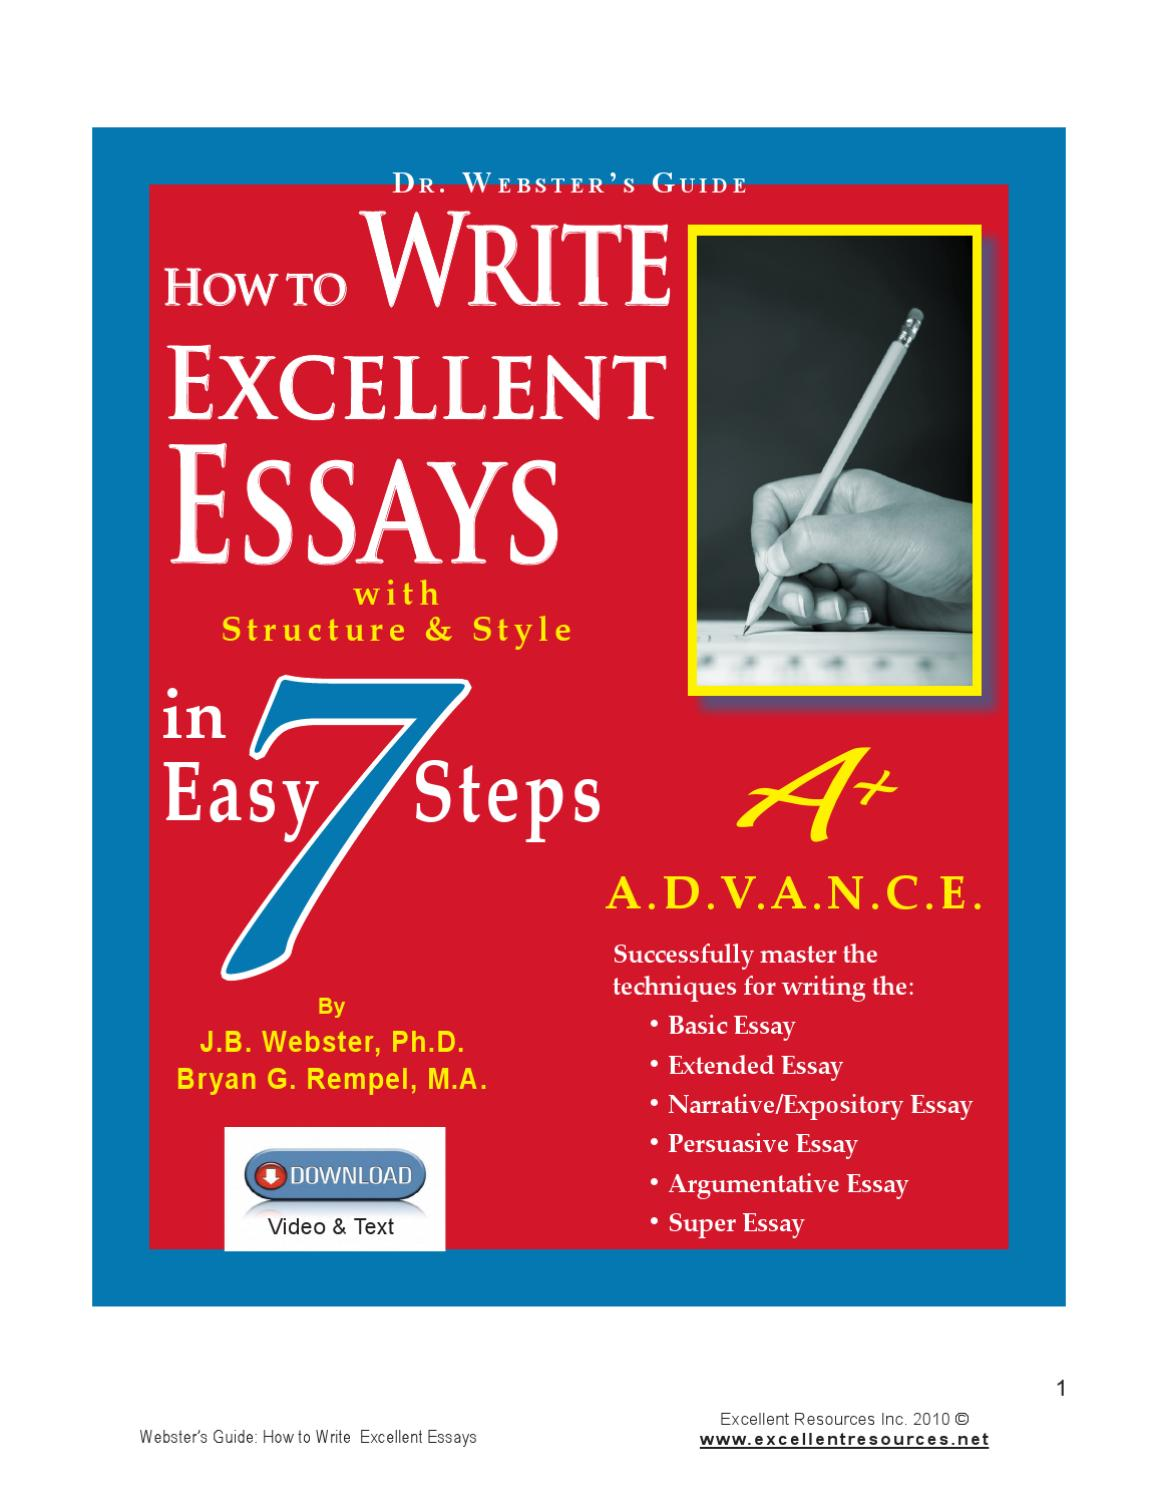 Excellent essay writers